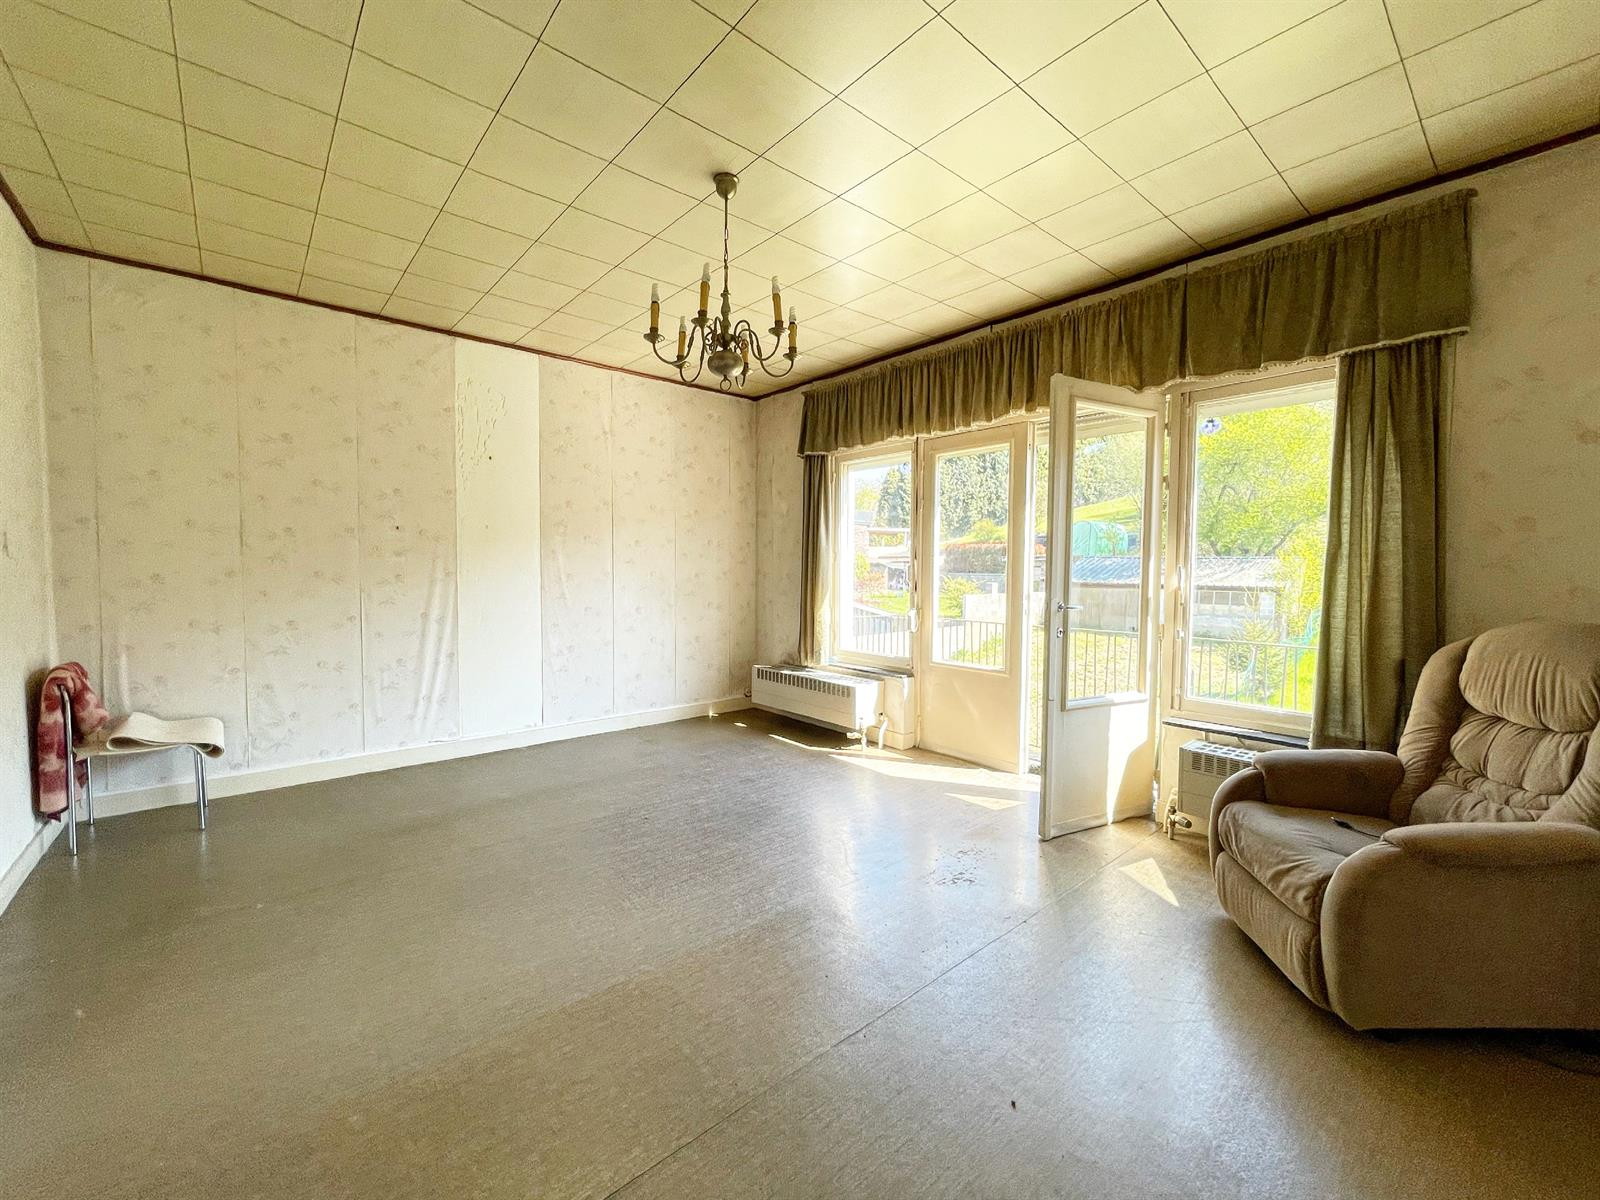 Huis - Flemalle - #4346611-21